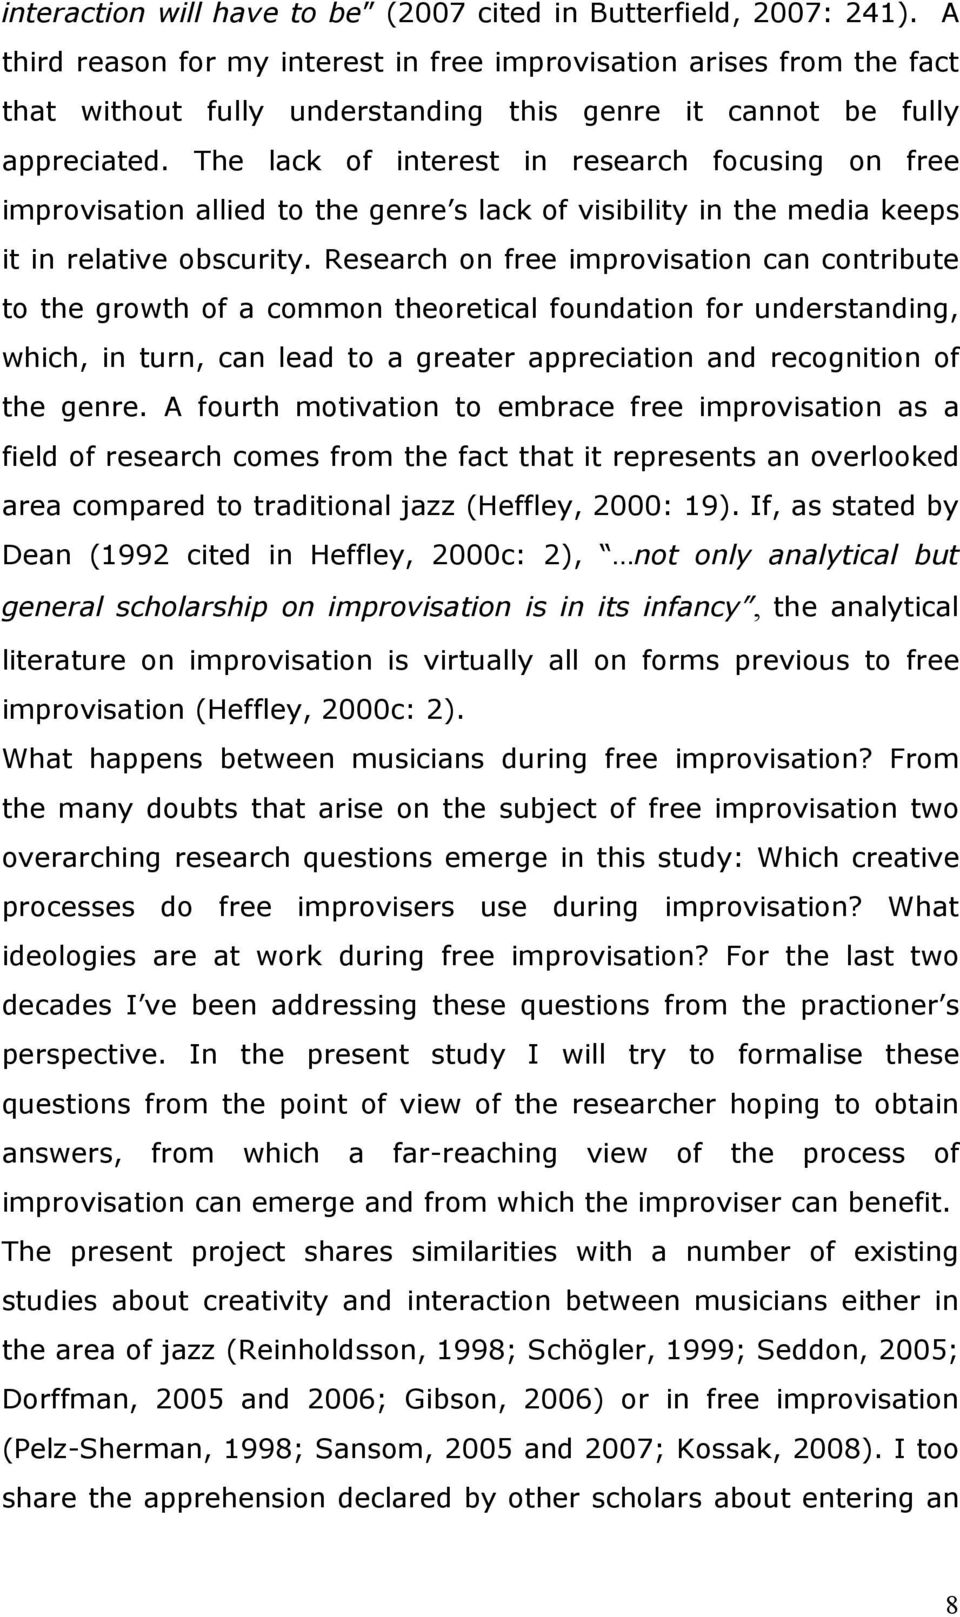 The lack of interest in research focusing on free improvisation allied to the genre s lack of visibility in the media keeps it in relative obscurity.